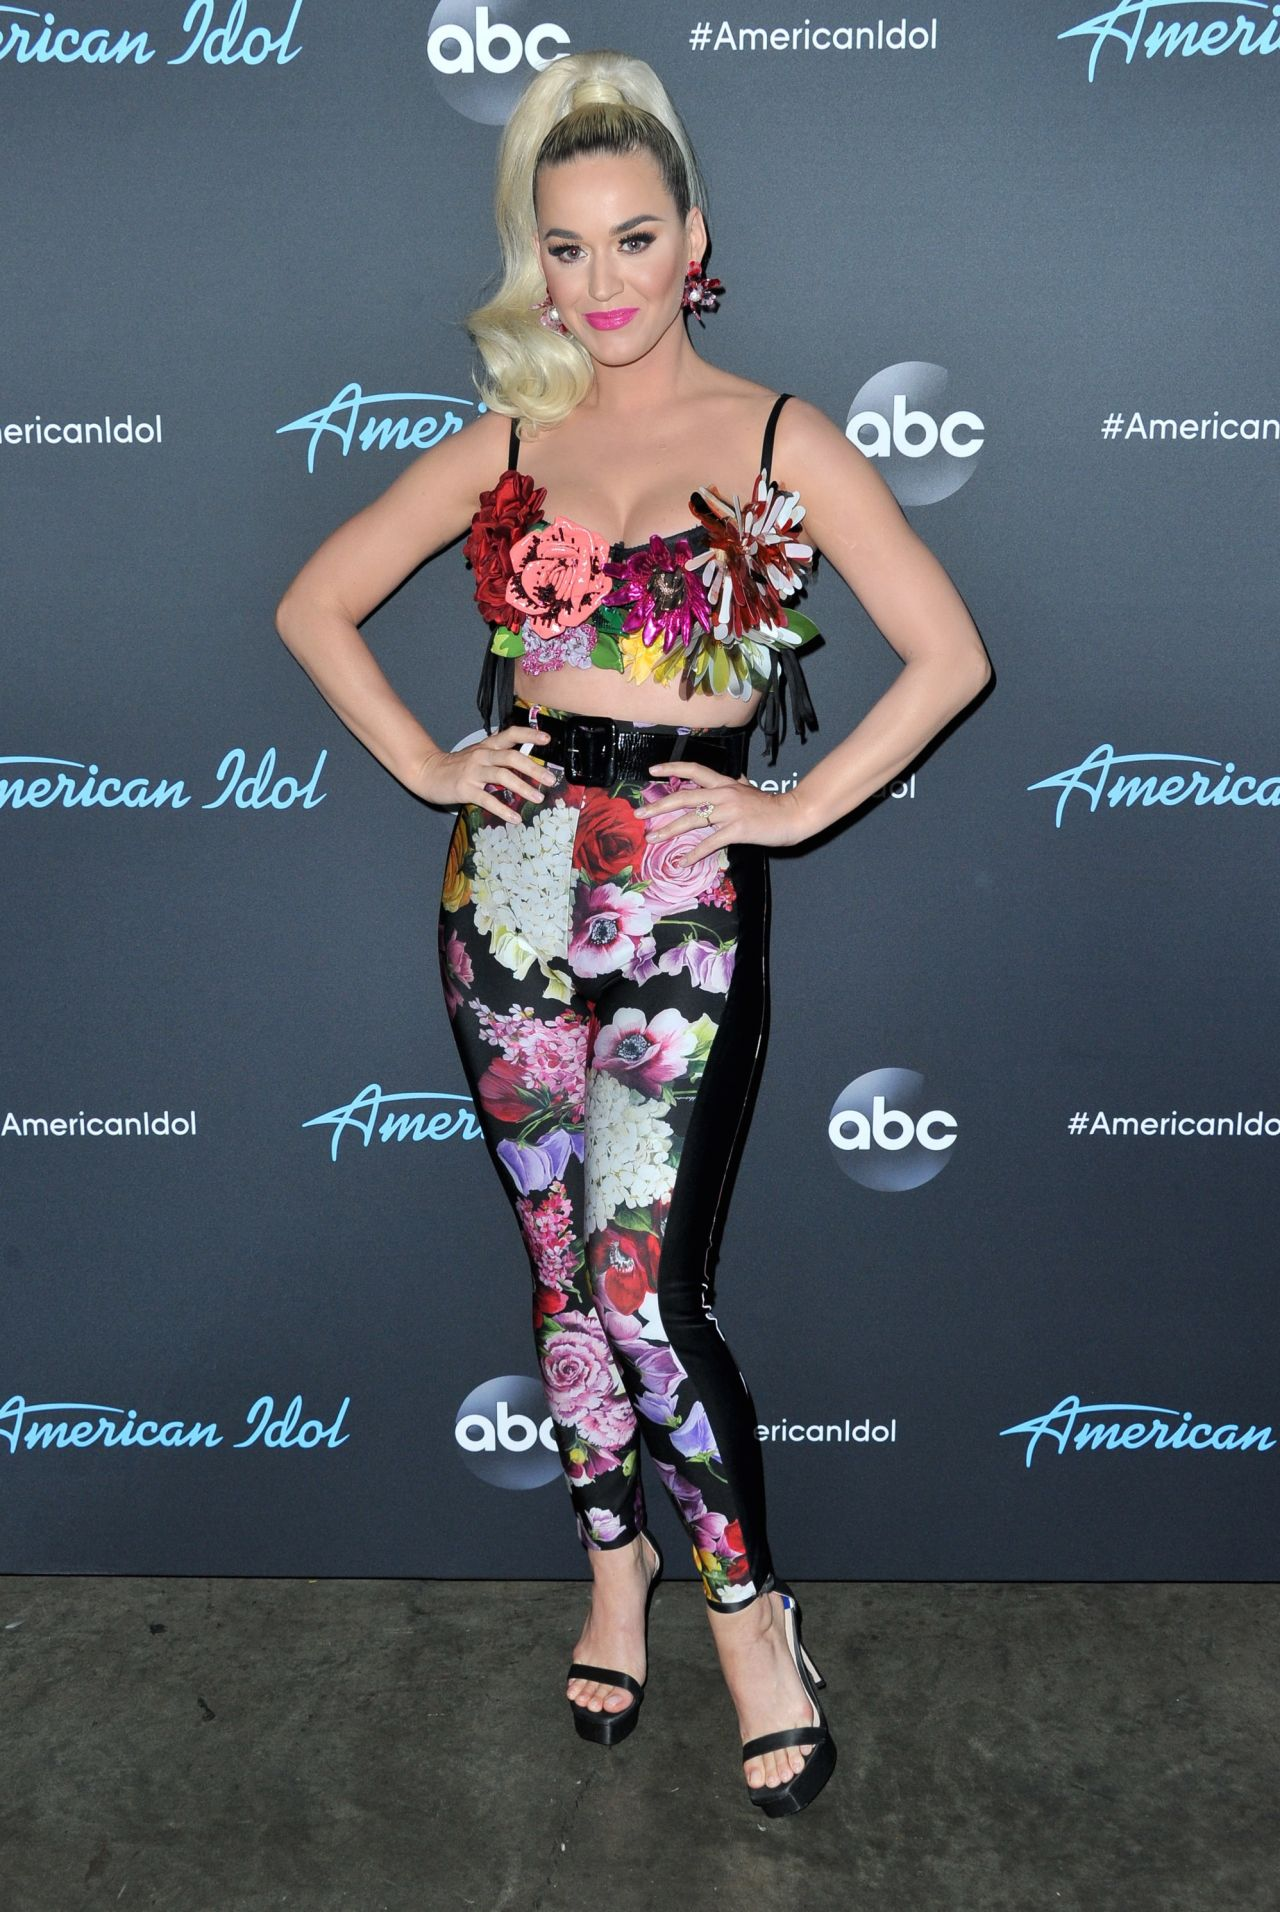 katy-perry-american-idol-top-5-show-in-l